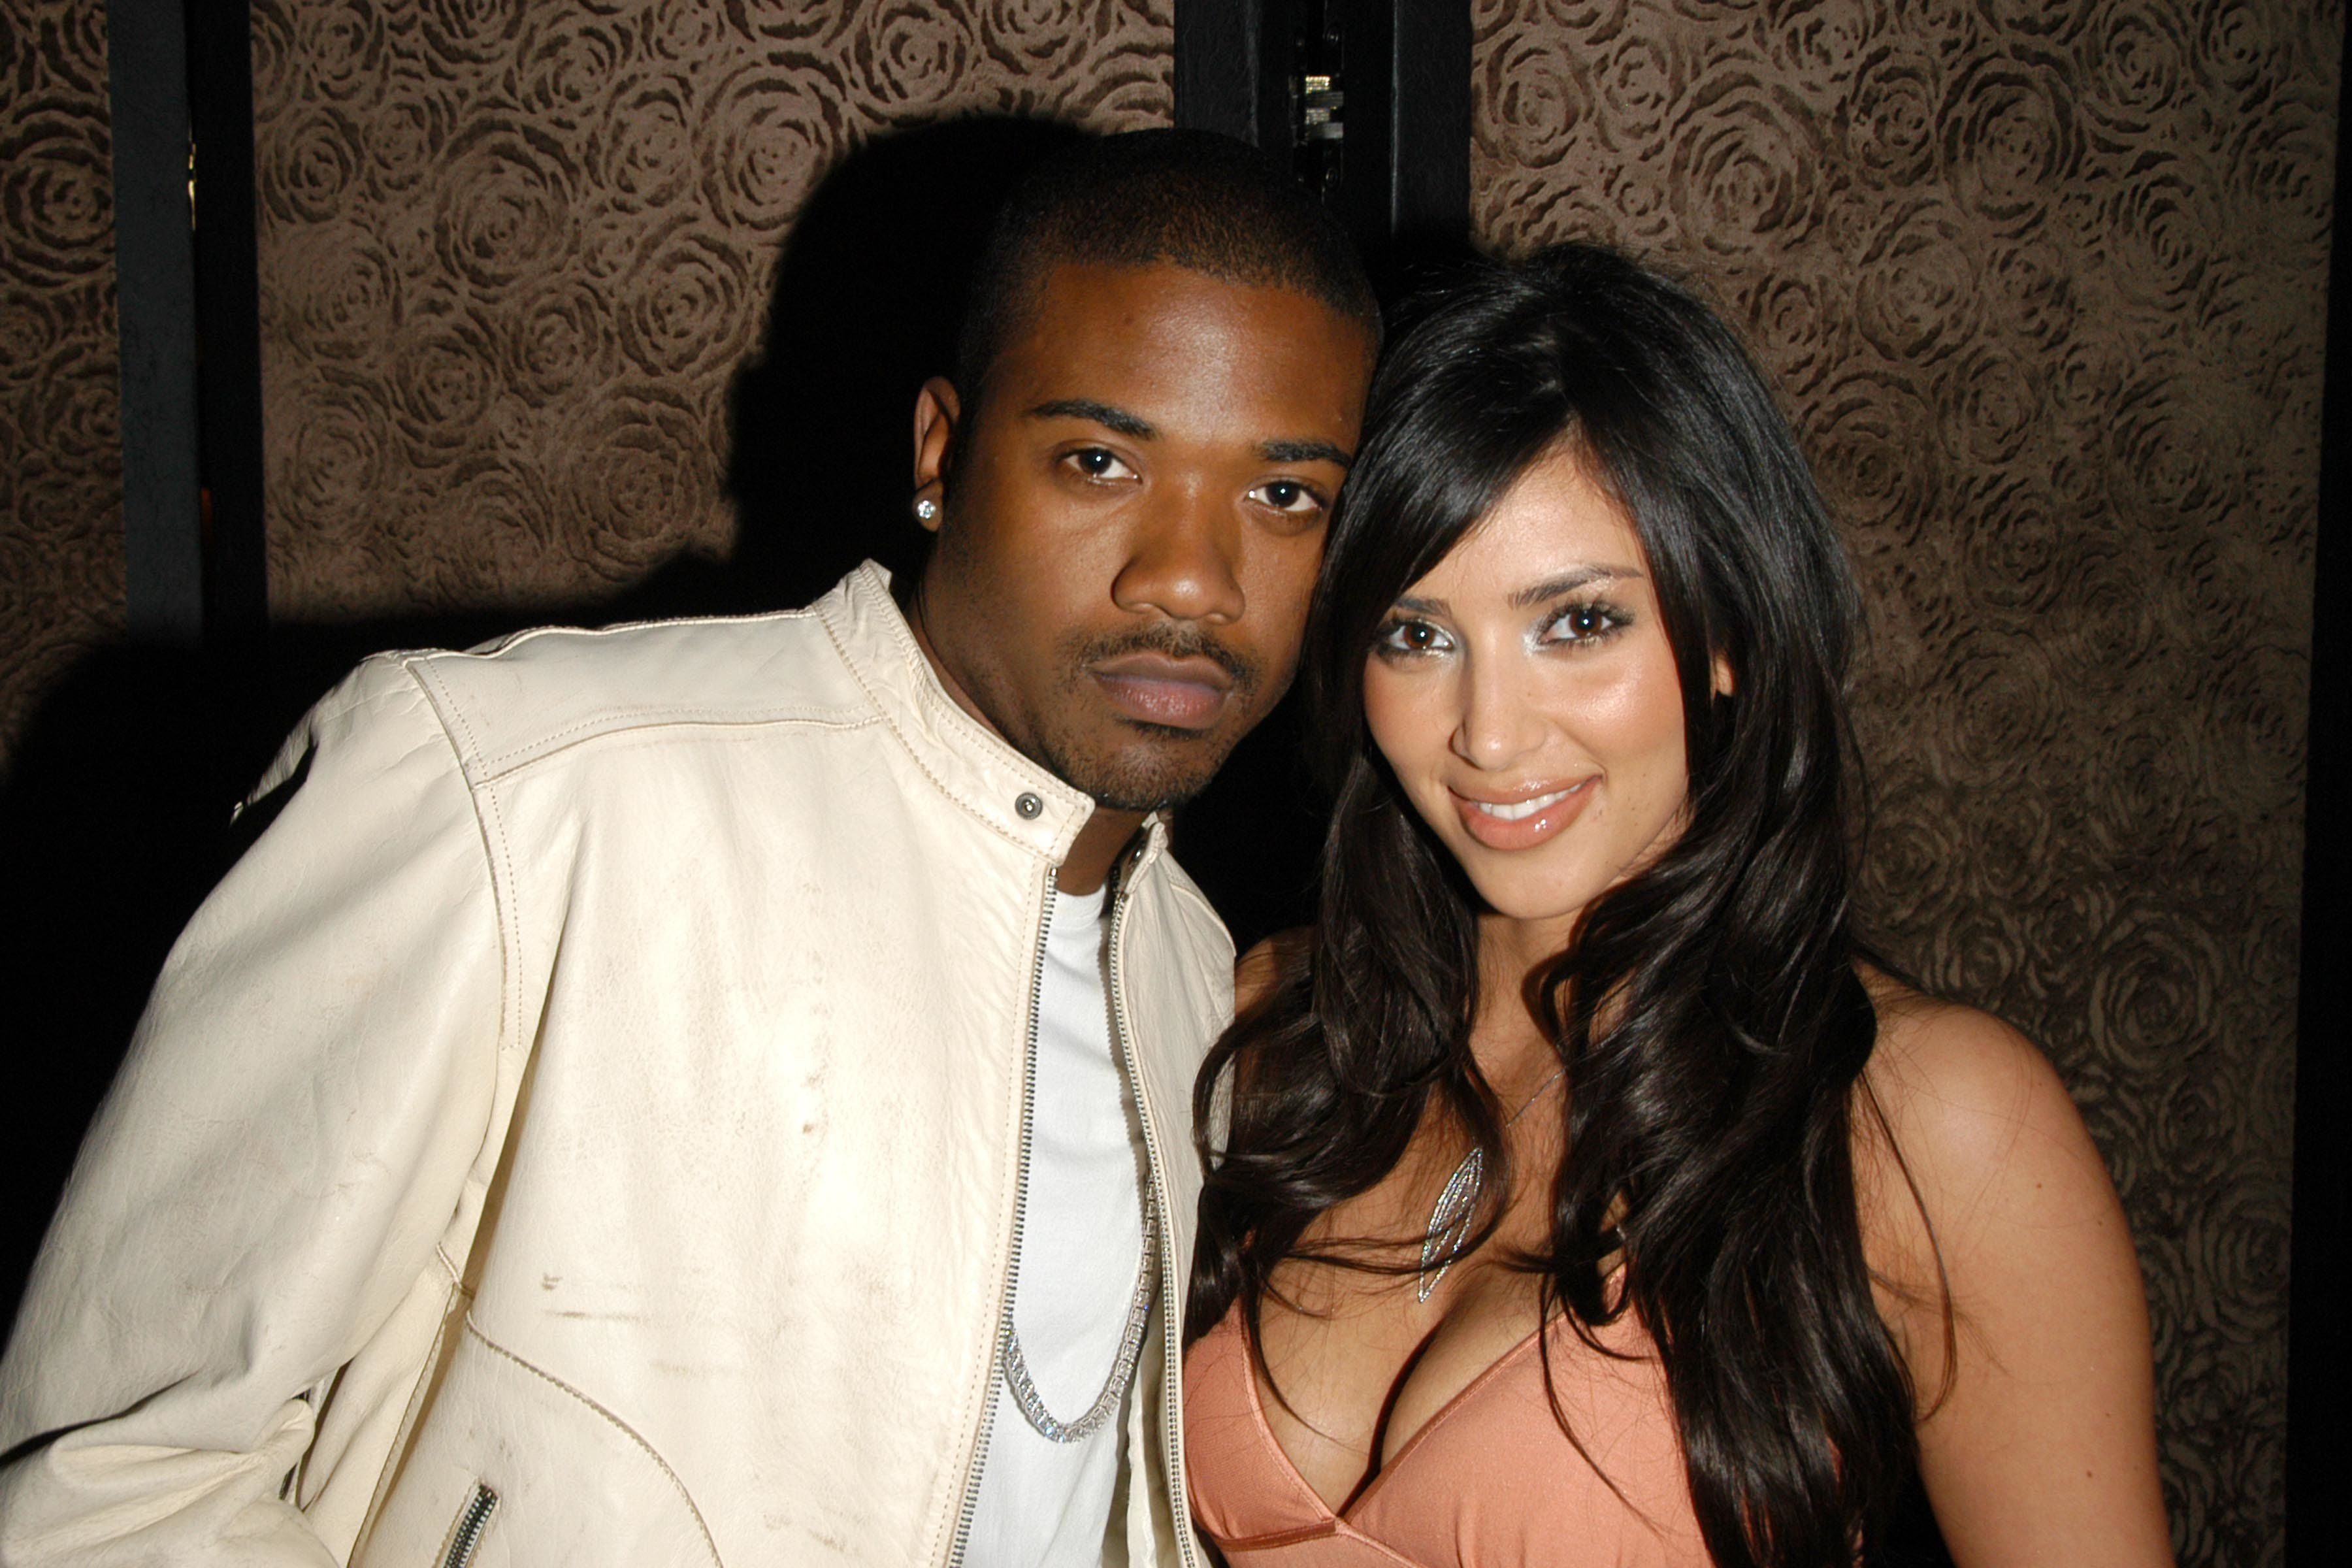 How old was kim kardashian in her sex tape